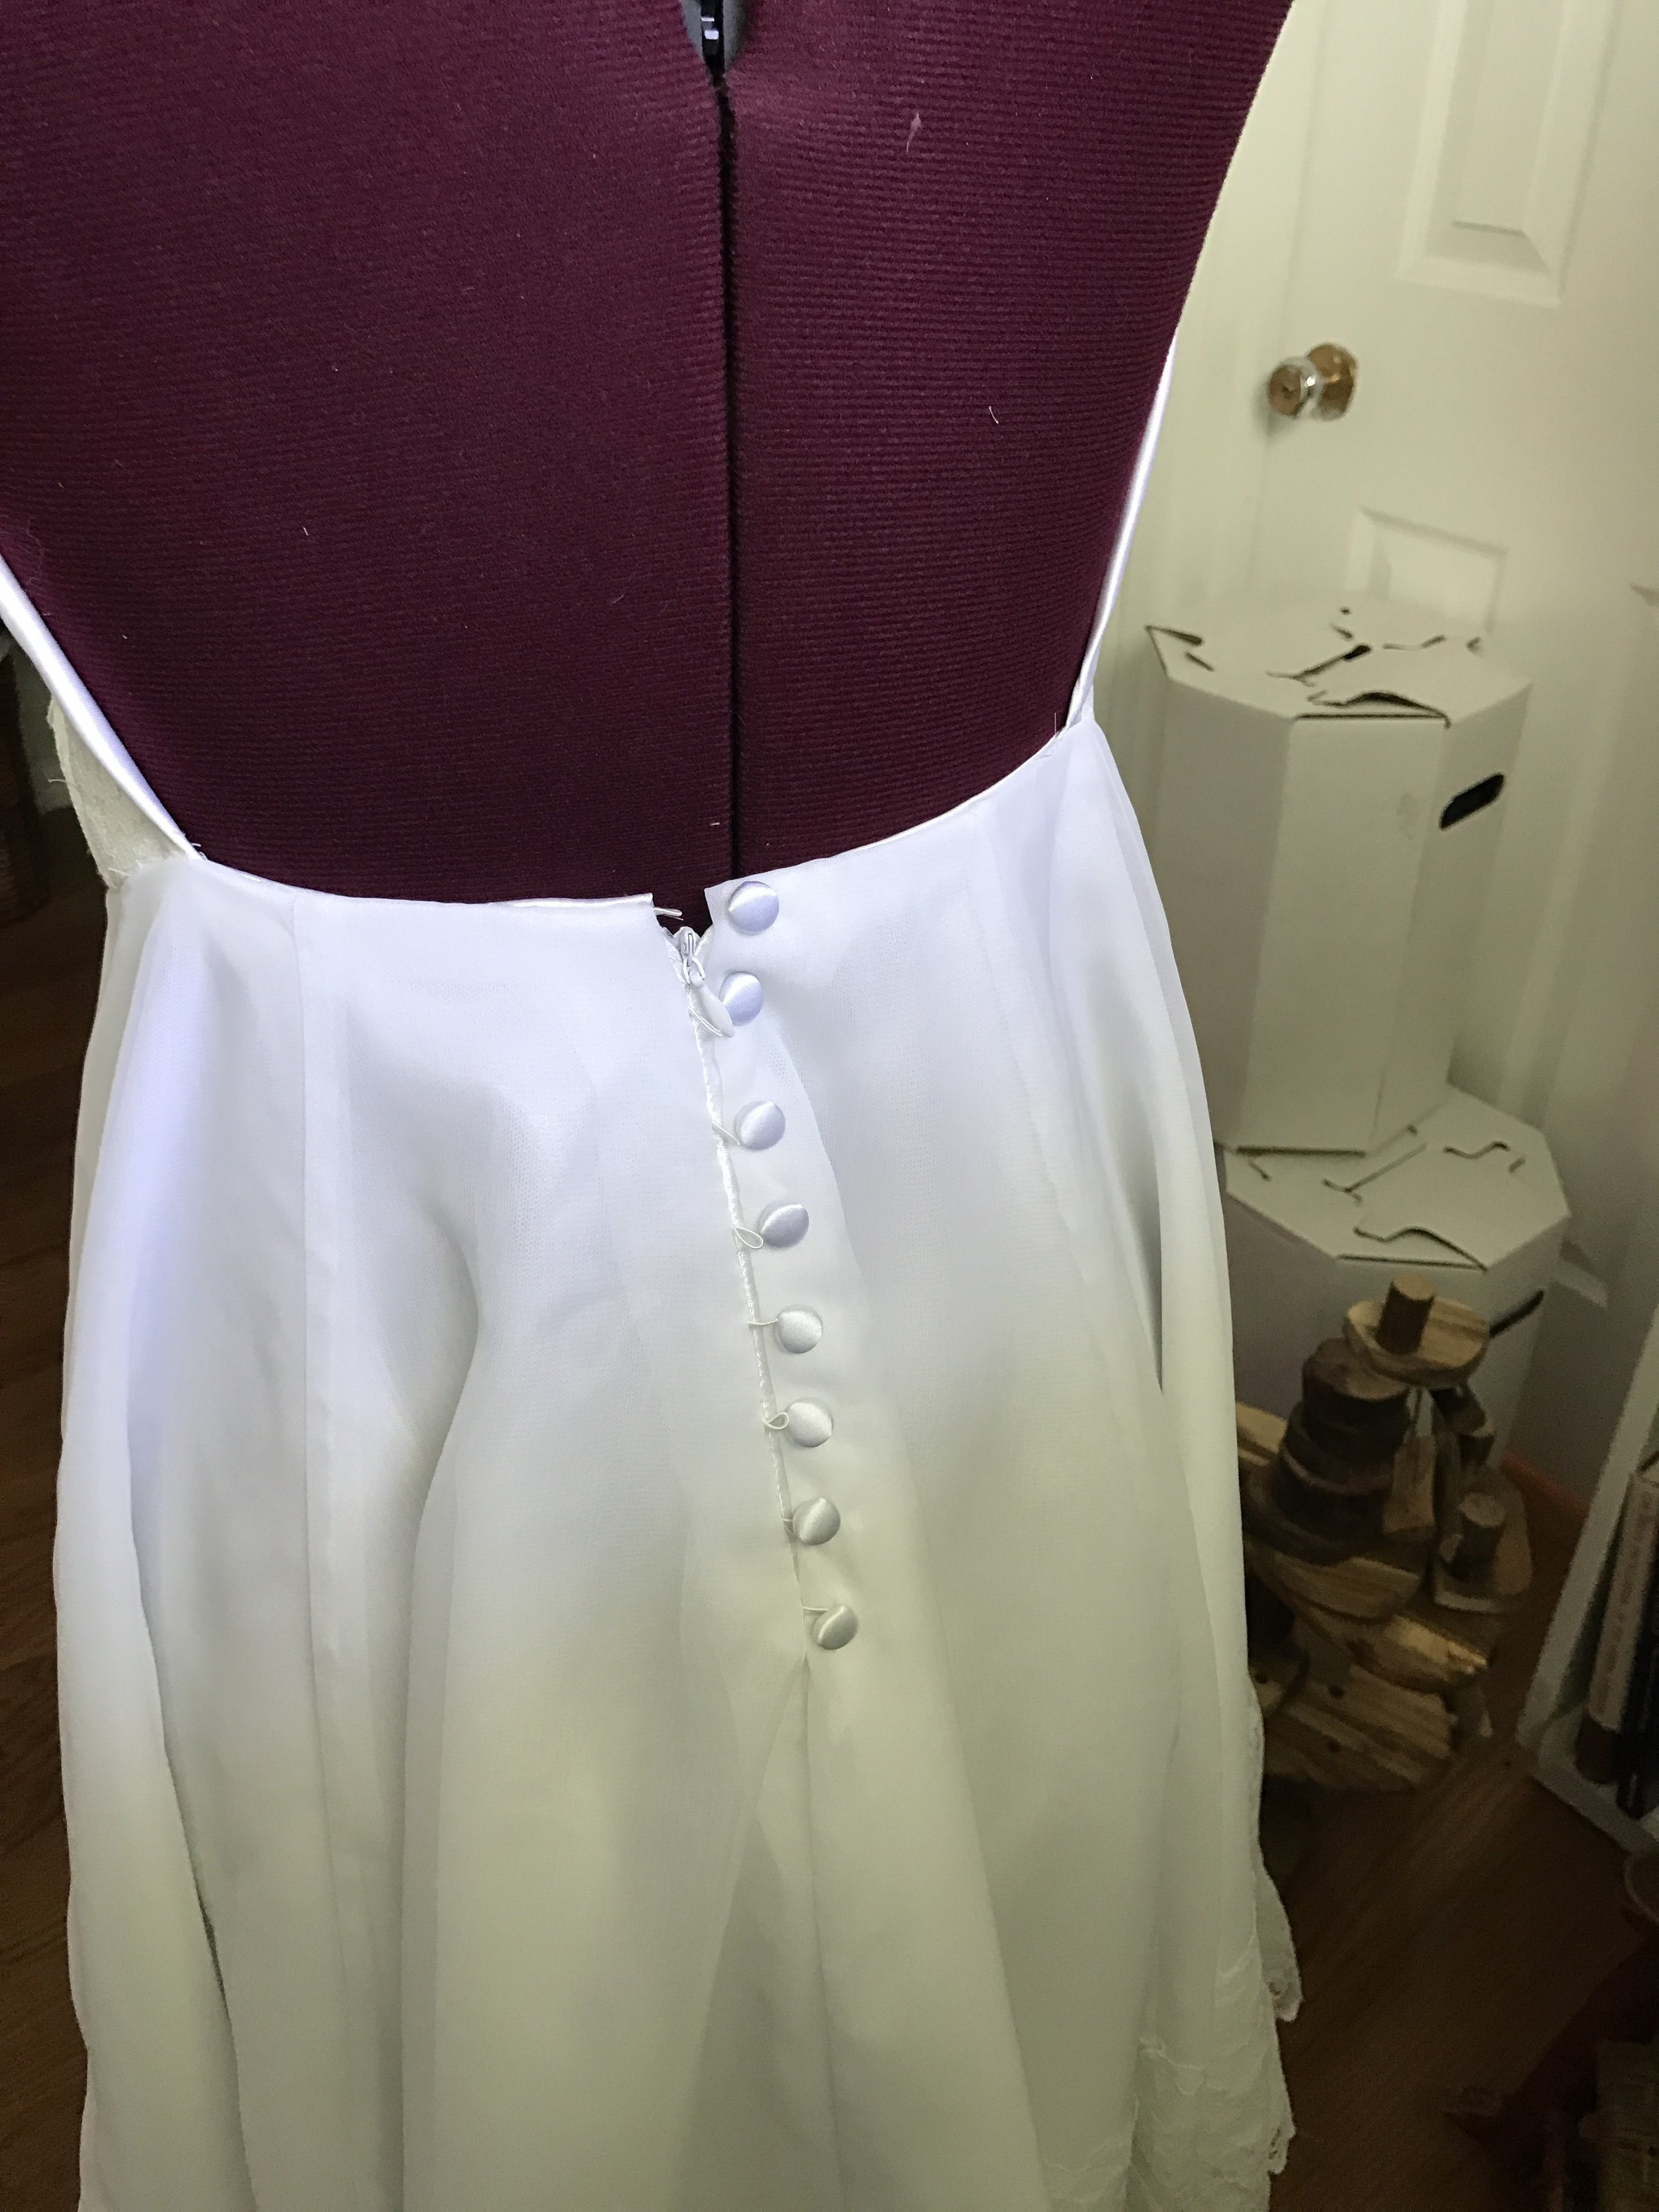 This one started as a long sleeve wedding dress from the 80s. I made it modern and fitted it to her daughter.